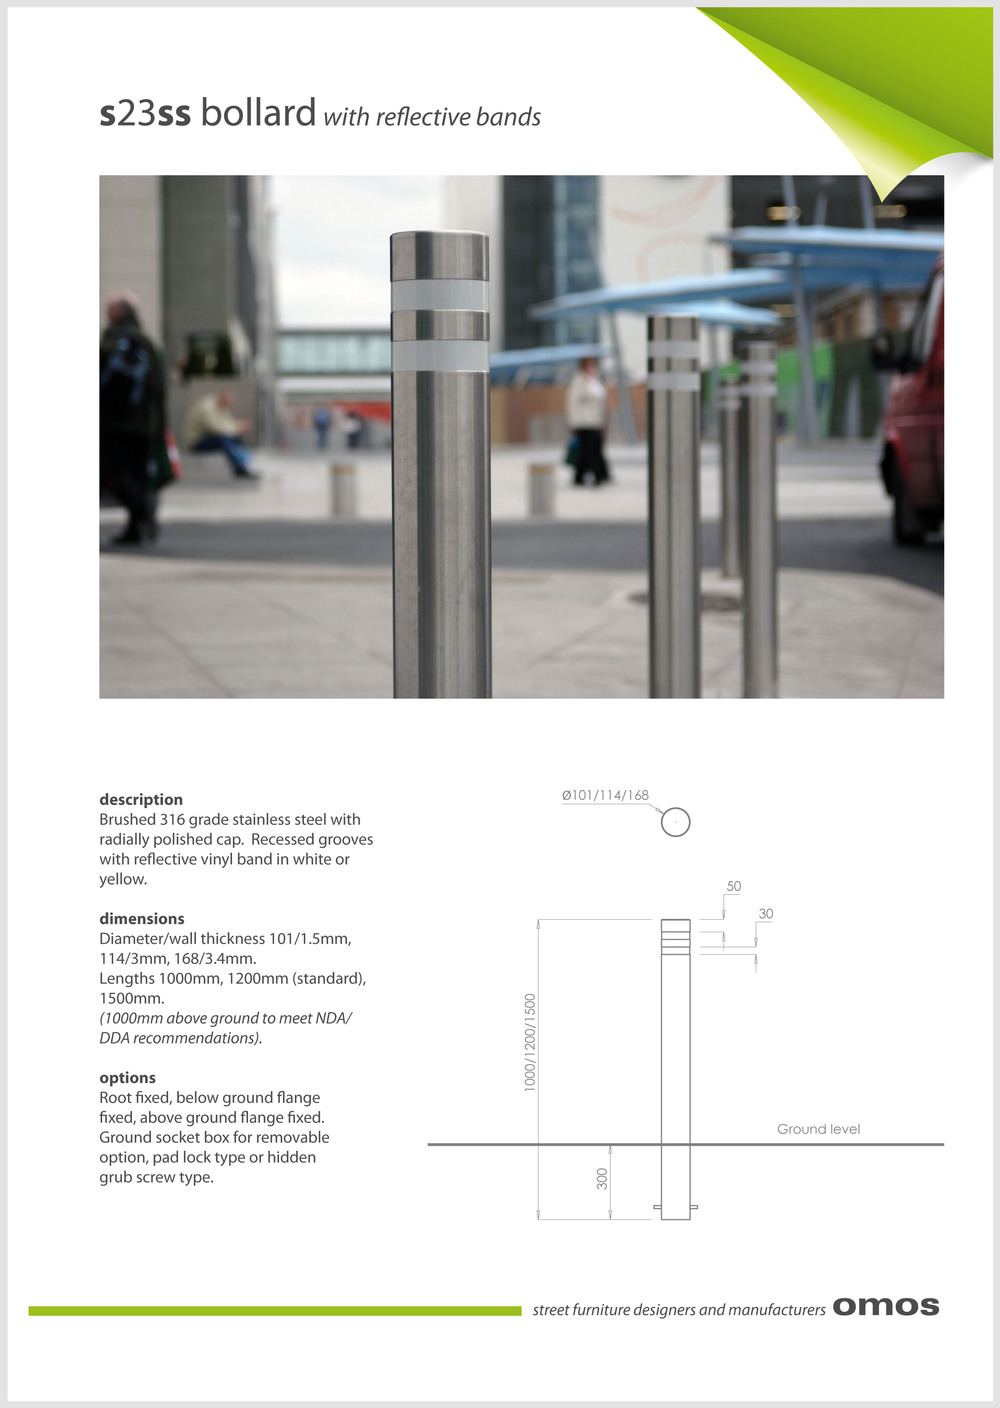 s23ss reflective bollard data sheet.jpg